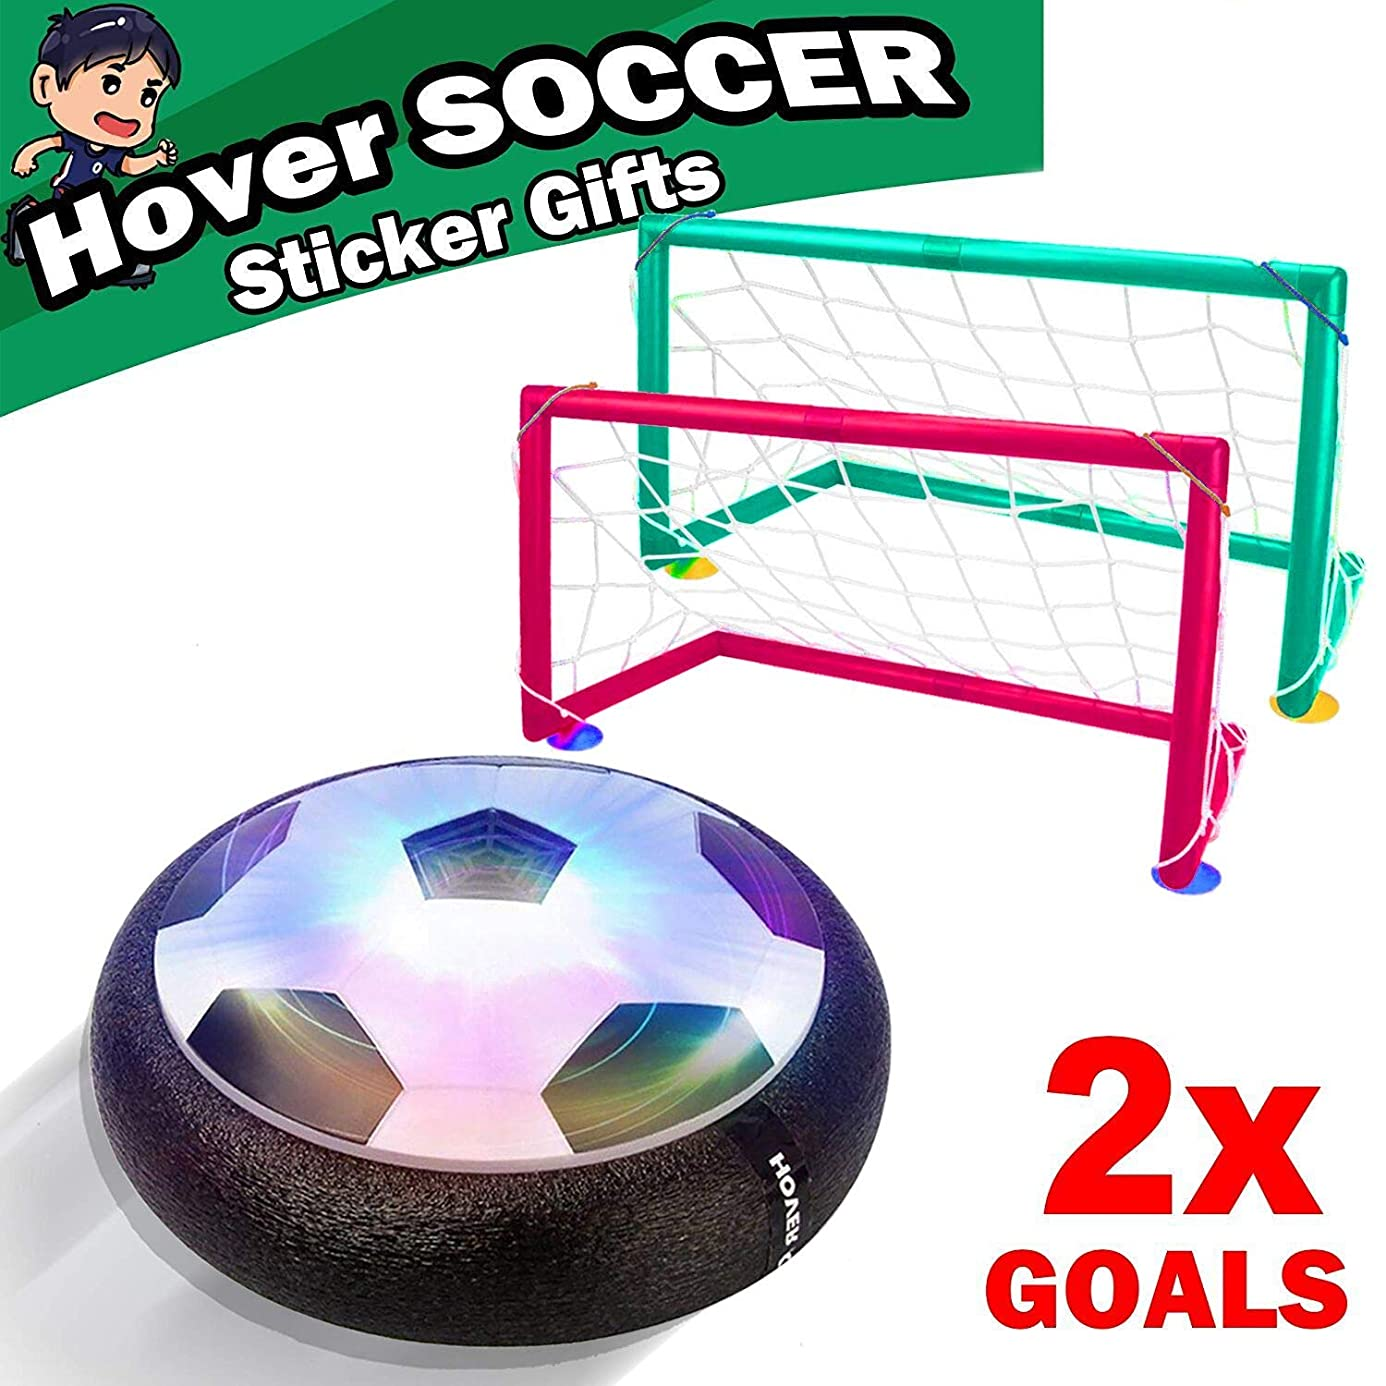 Sixone Kids Toys Hover Soccer Ball Sport Toys Set 2 Goals Indoor Outdoor LED Air Power Soccer Indoor Outdoor Training Ball Playing Football Game Toys for 3 4 5 6 7 8-12 Year Old Boys Toy Gift Birthday